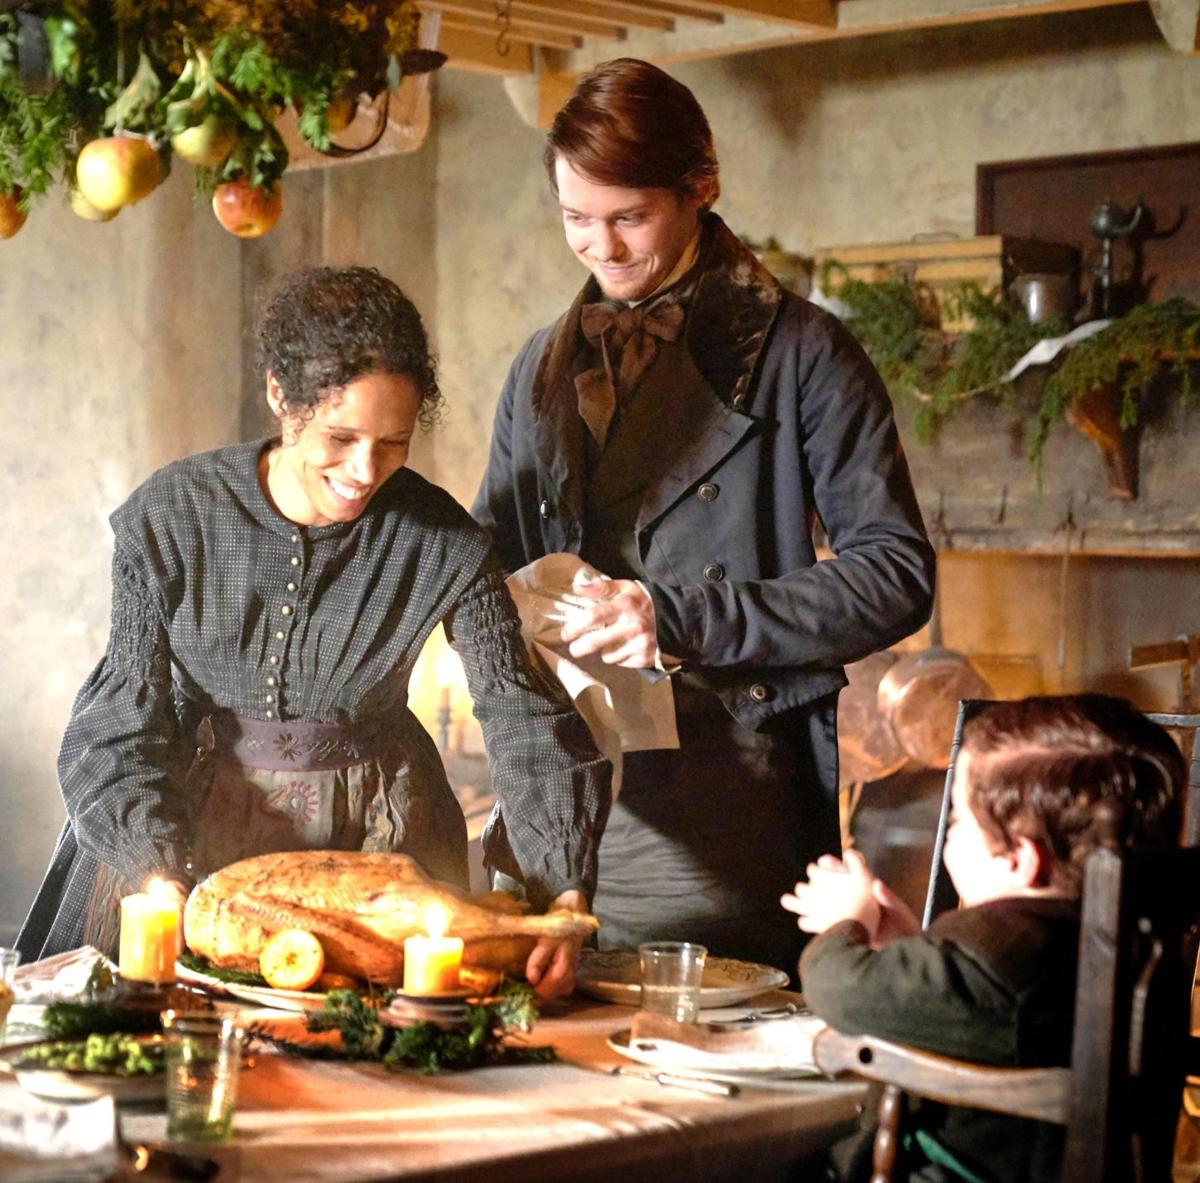 'A Christmas Carol' FX offers a new look at the Dickens holiday classic | Arts and Entertainment ...